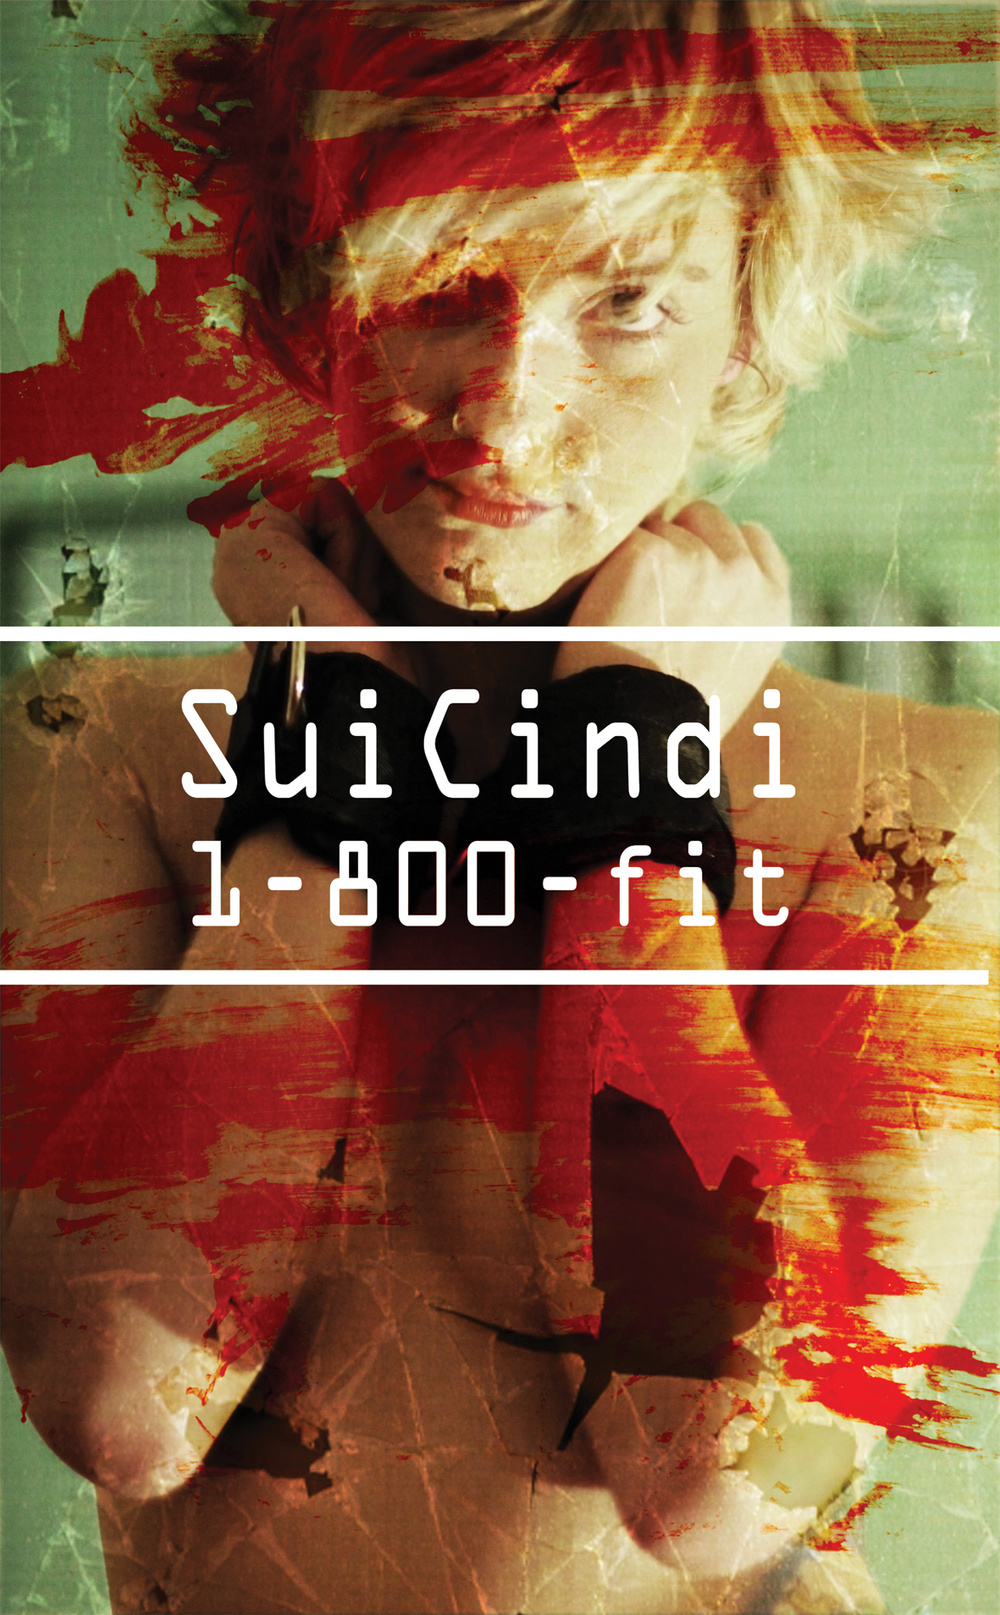 Oct 2012. Photography and design by Ulysses Black. Model: SindiSucide [ http://suicidegirls.com/members/Sindi/ ]